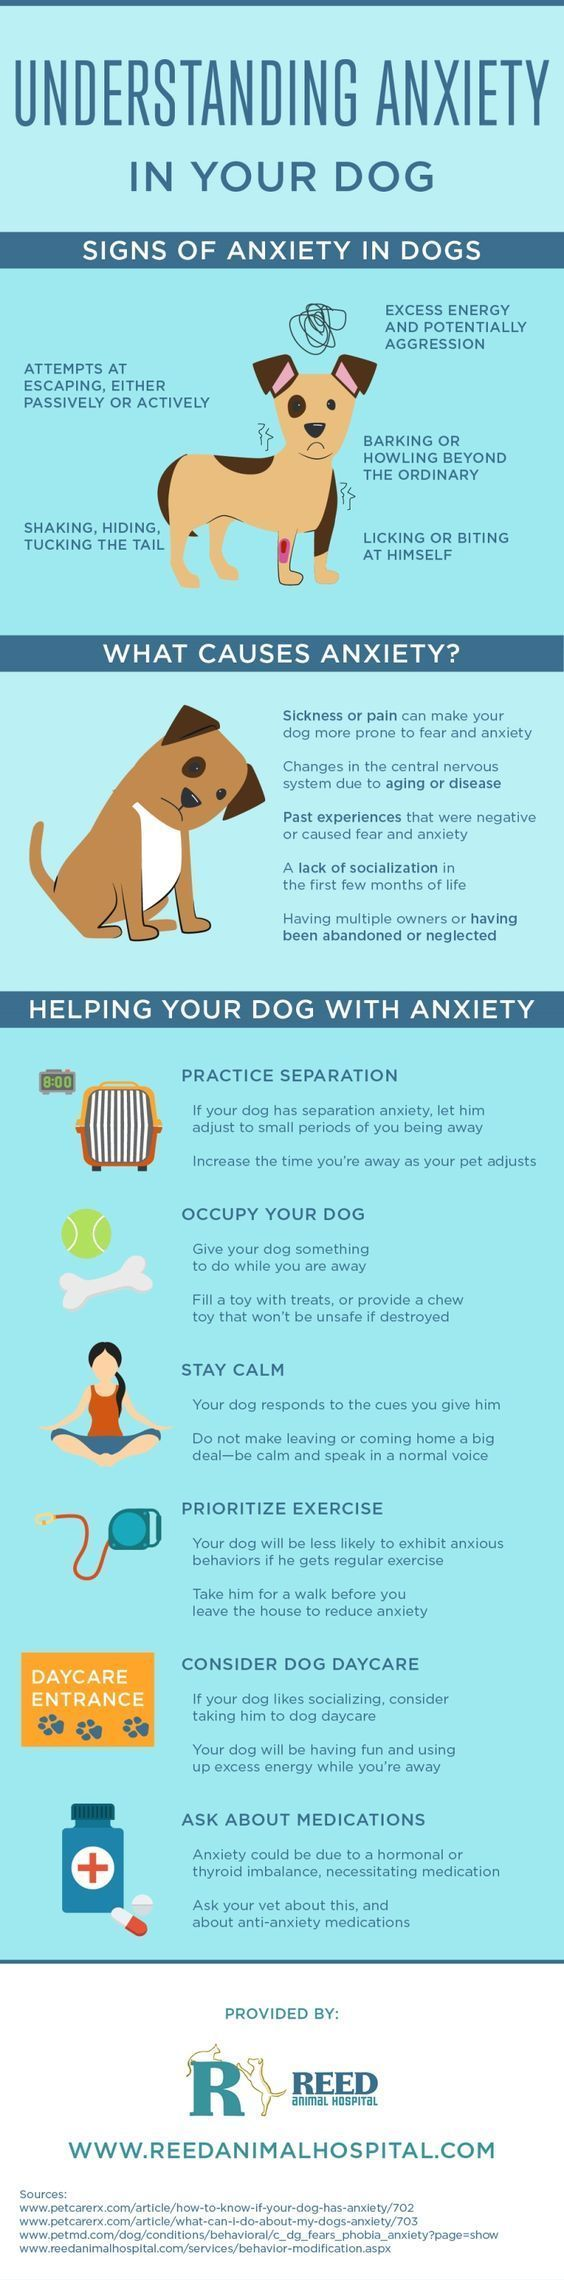 Dealing with canine anxiety? Find out more about the symptoms and potential cures. * You can find more details by visiting the image link. #DogTrainingTips via @KaufmannsPuppy #DogsTraining